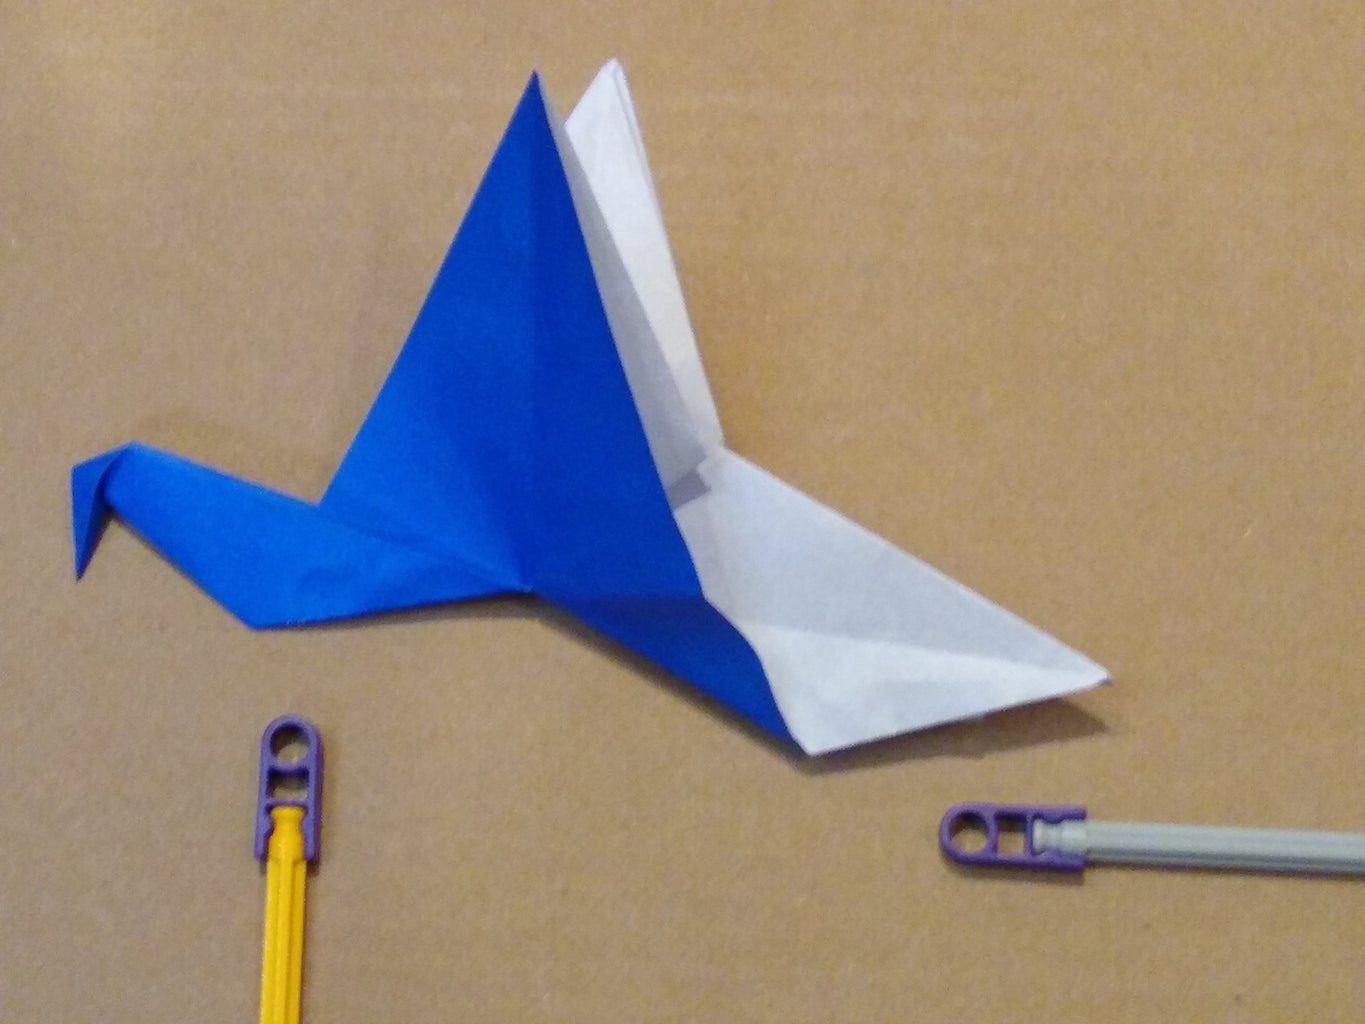 Attach Origami Flapping Bird to the Origami Support Frame